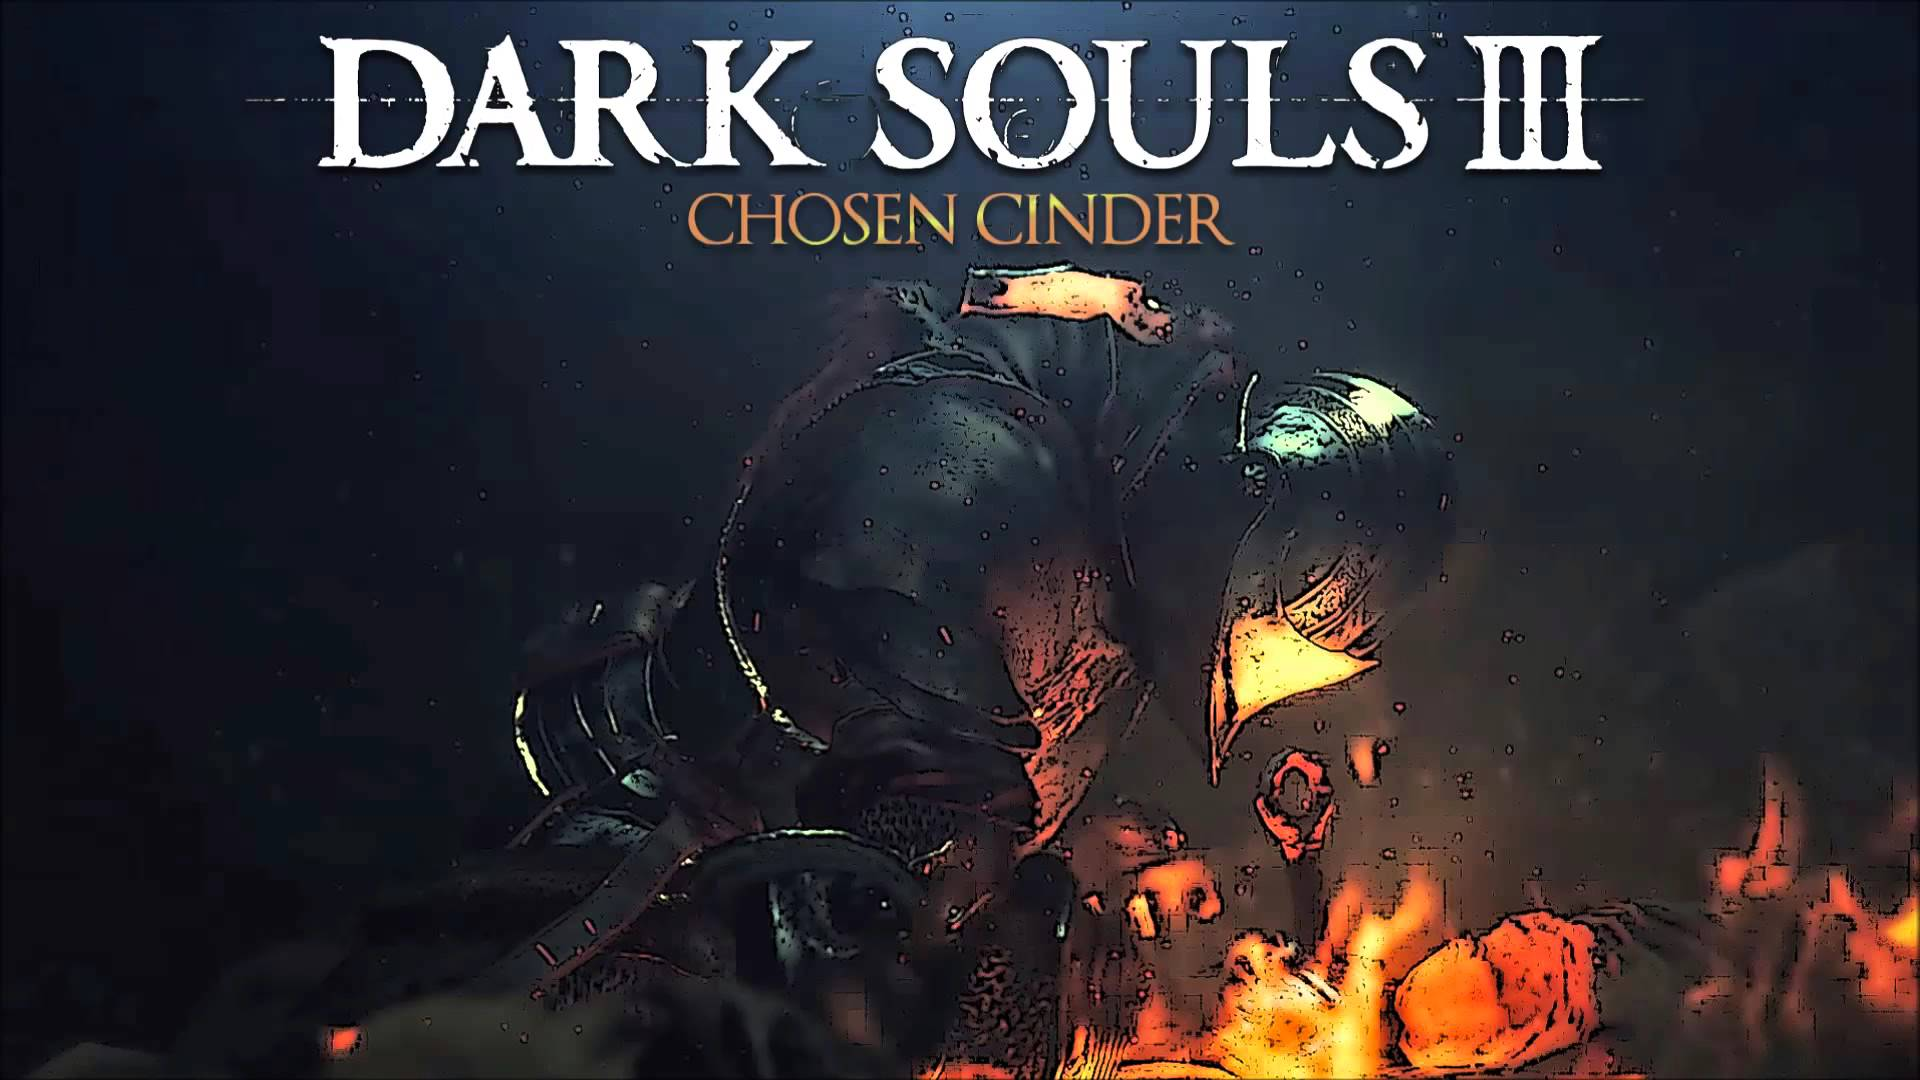 Wallpaper of Dark Souls 3 logo for Laptop